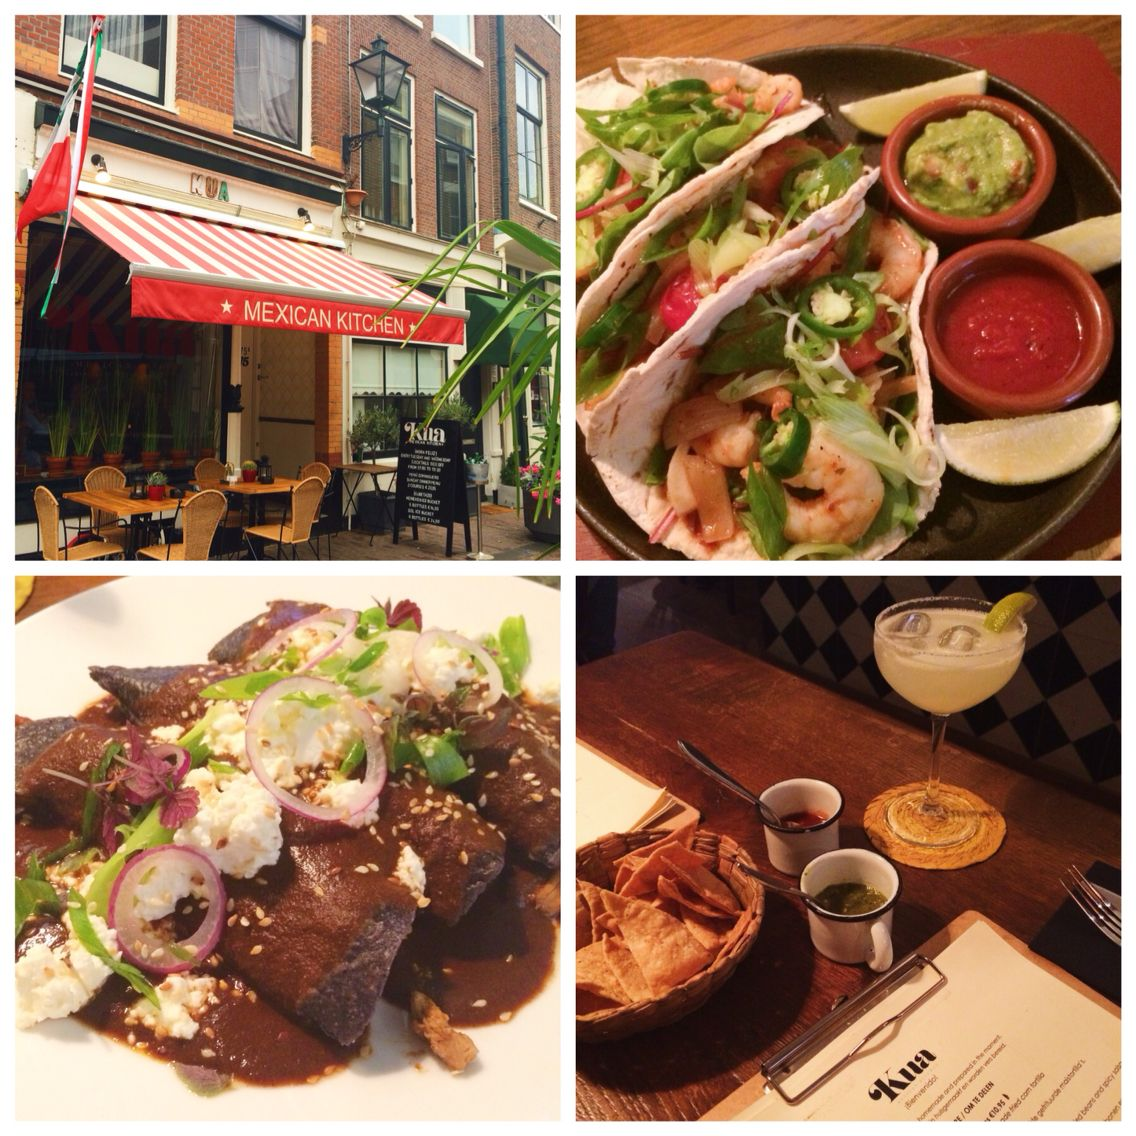 Kua Mexican Kitchen.Pin Op Food Den Haag To Go